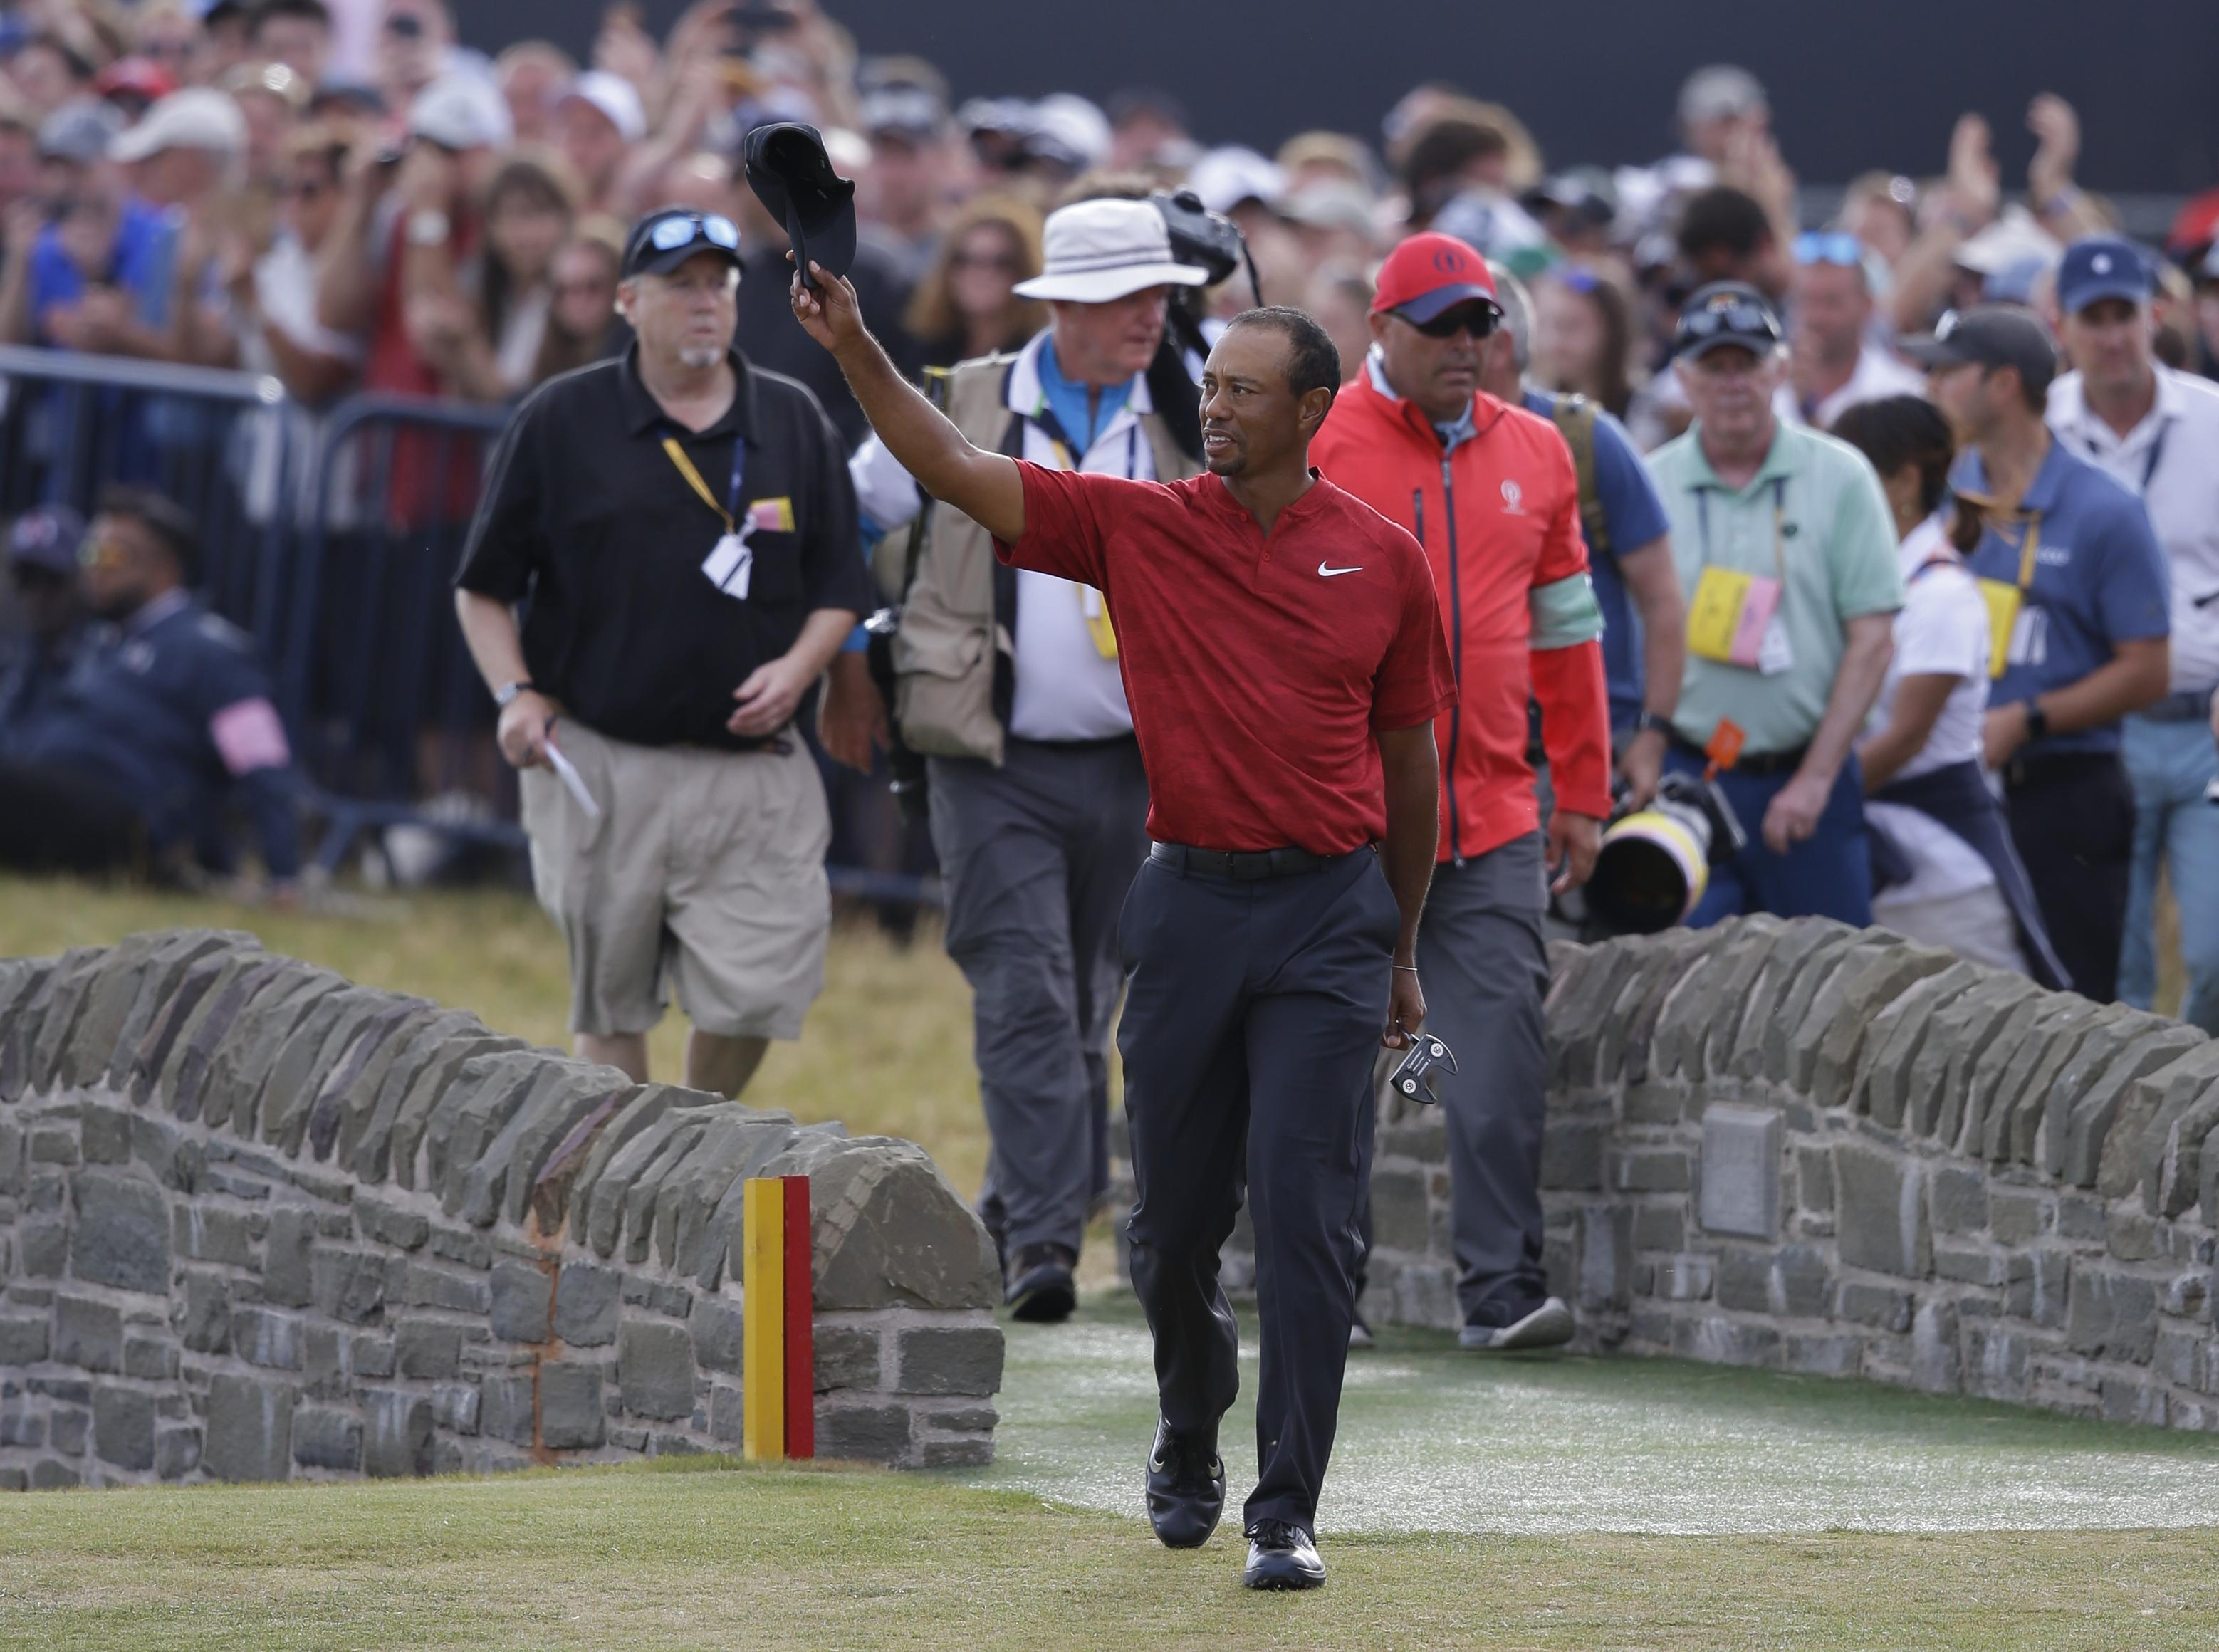 Woods failed in his quest to win his first major since beating Rocco Mediate in a playoff to win the US Open in 2008